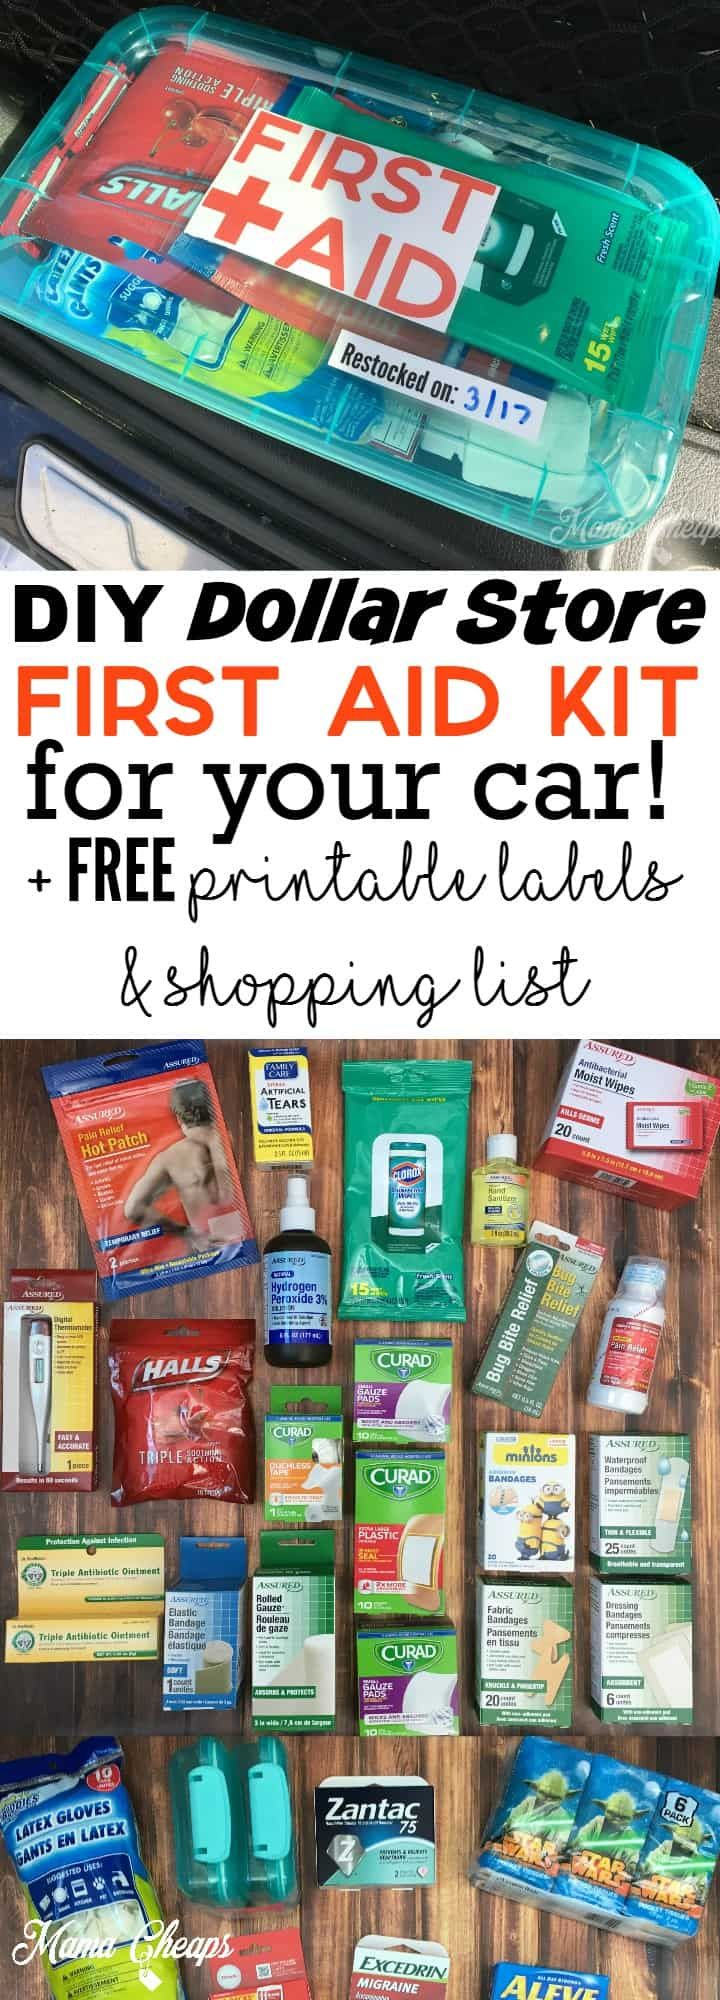 DIY Dollar Store First Aid Kit for Your Car + FREE Printable Labels and Shopping List | Mama Cheaps